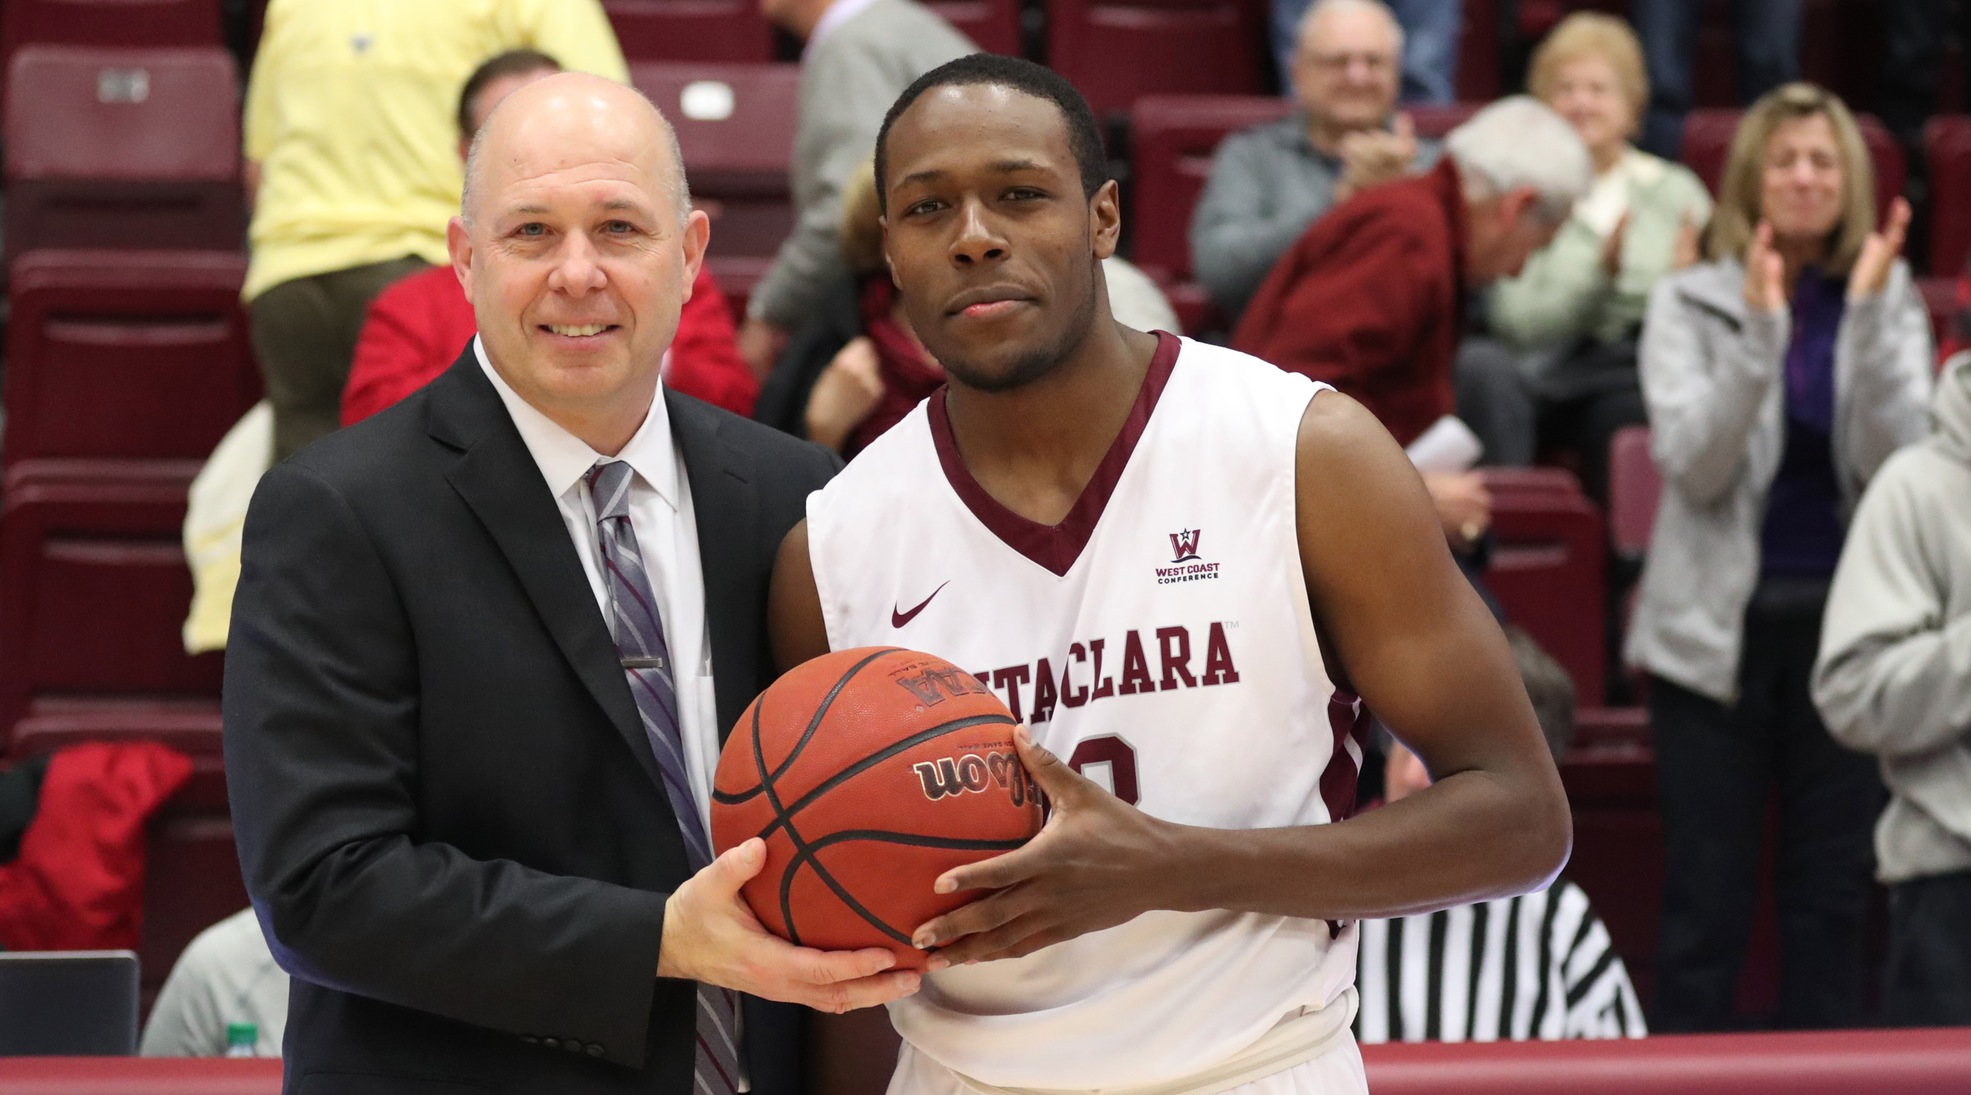 Herb Sendek presented Jared Brownridge with the game ball for reaching 2,000 career points.